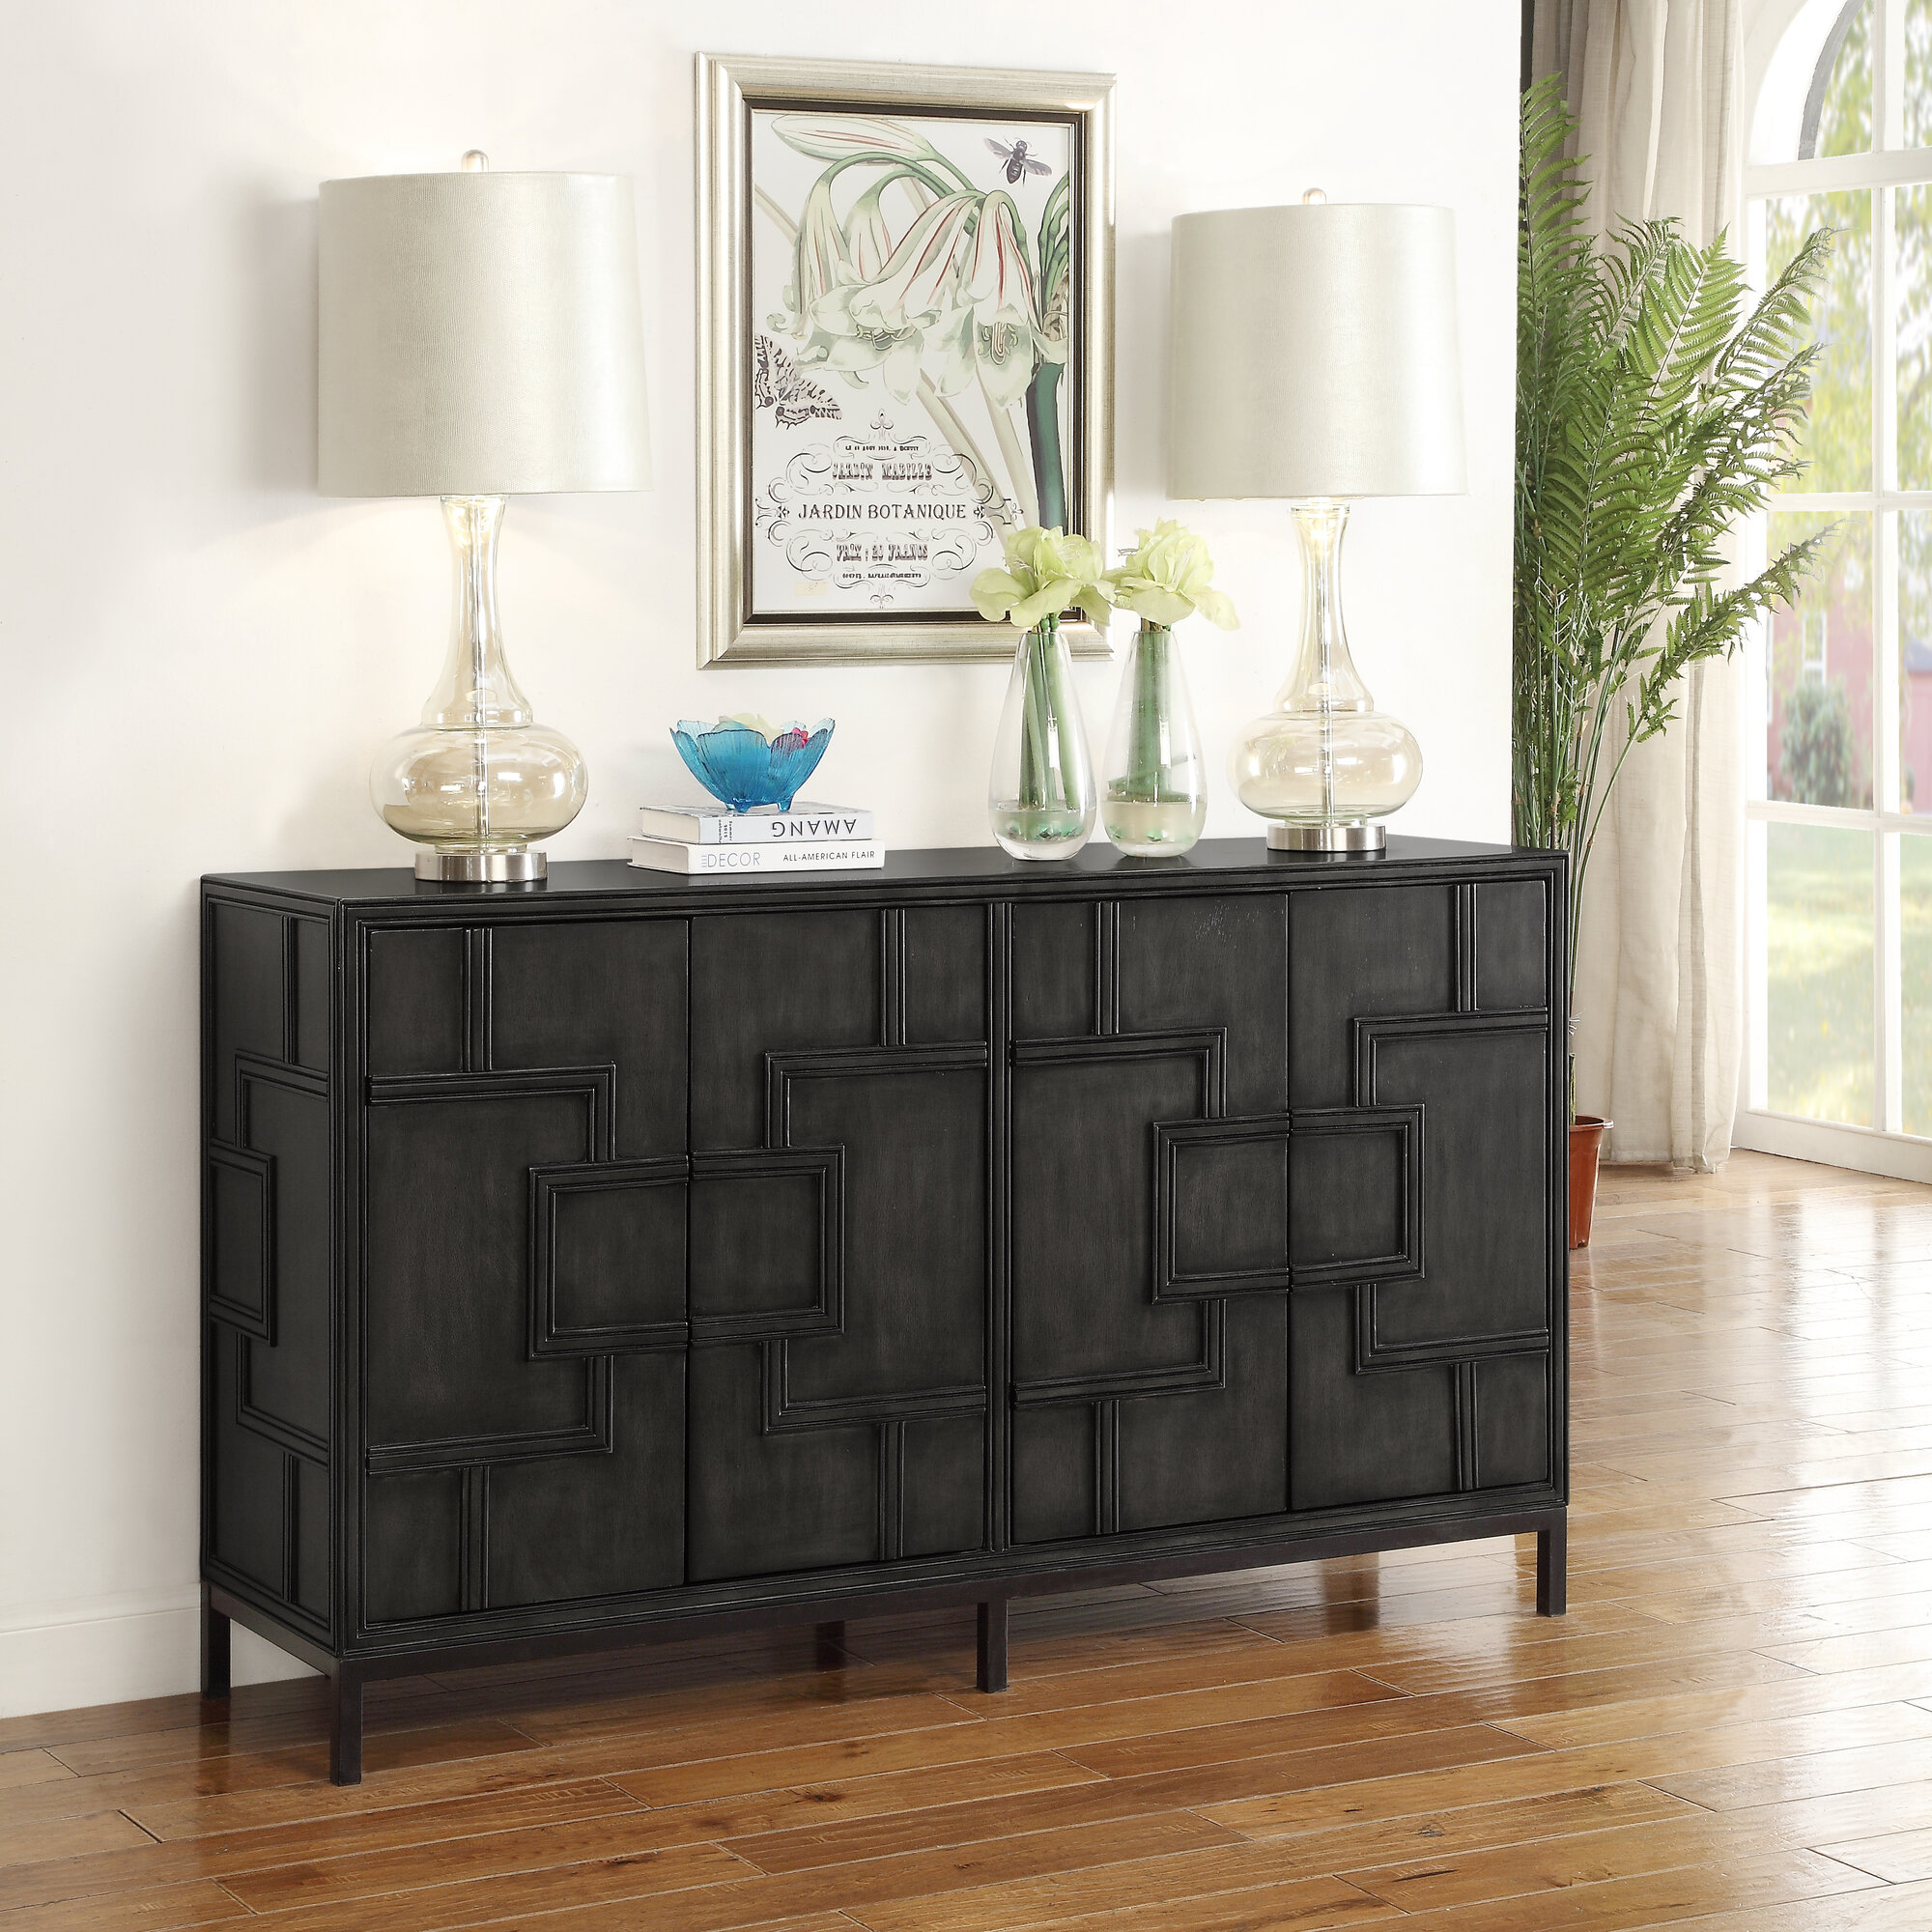 Details About Bloomsbury Market Candide Wood Credenza Regarding Candide Wood Credenzas (Gallery 1 of 30)